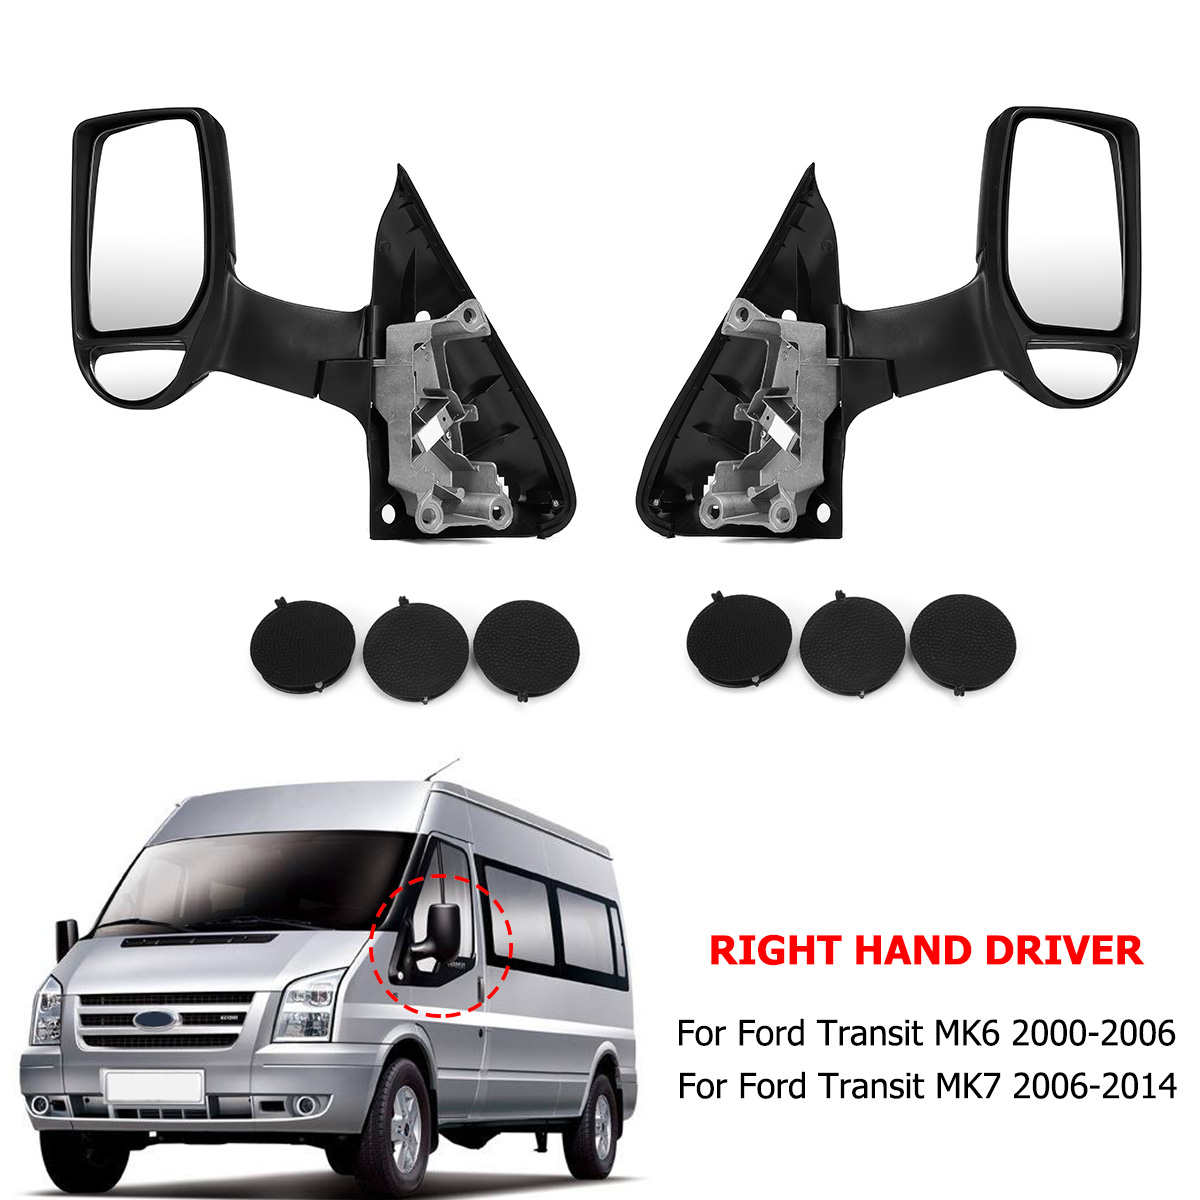 Car Right Wing Mirror Left Wing Mirrors Right Hand Driver Side Long Arm For Ford Transit MK6 MK7 Transit Car Right Wing Mirror Left Wing Mirrors Right Hand Driver Side Long Arm For Ford Transit MK6 MK7 Transit